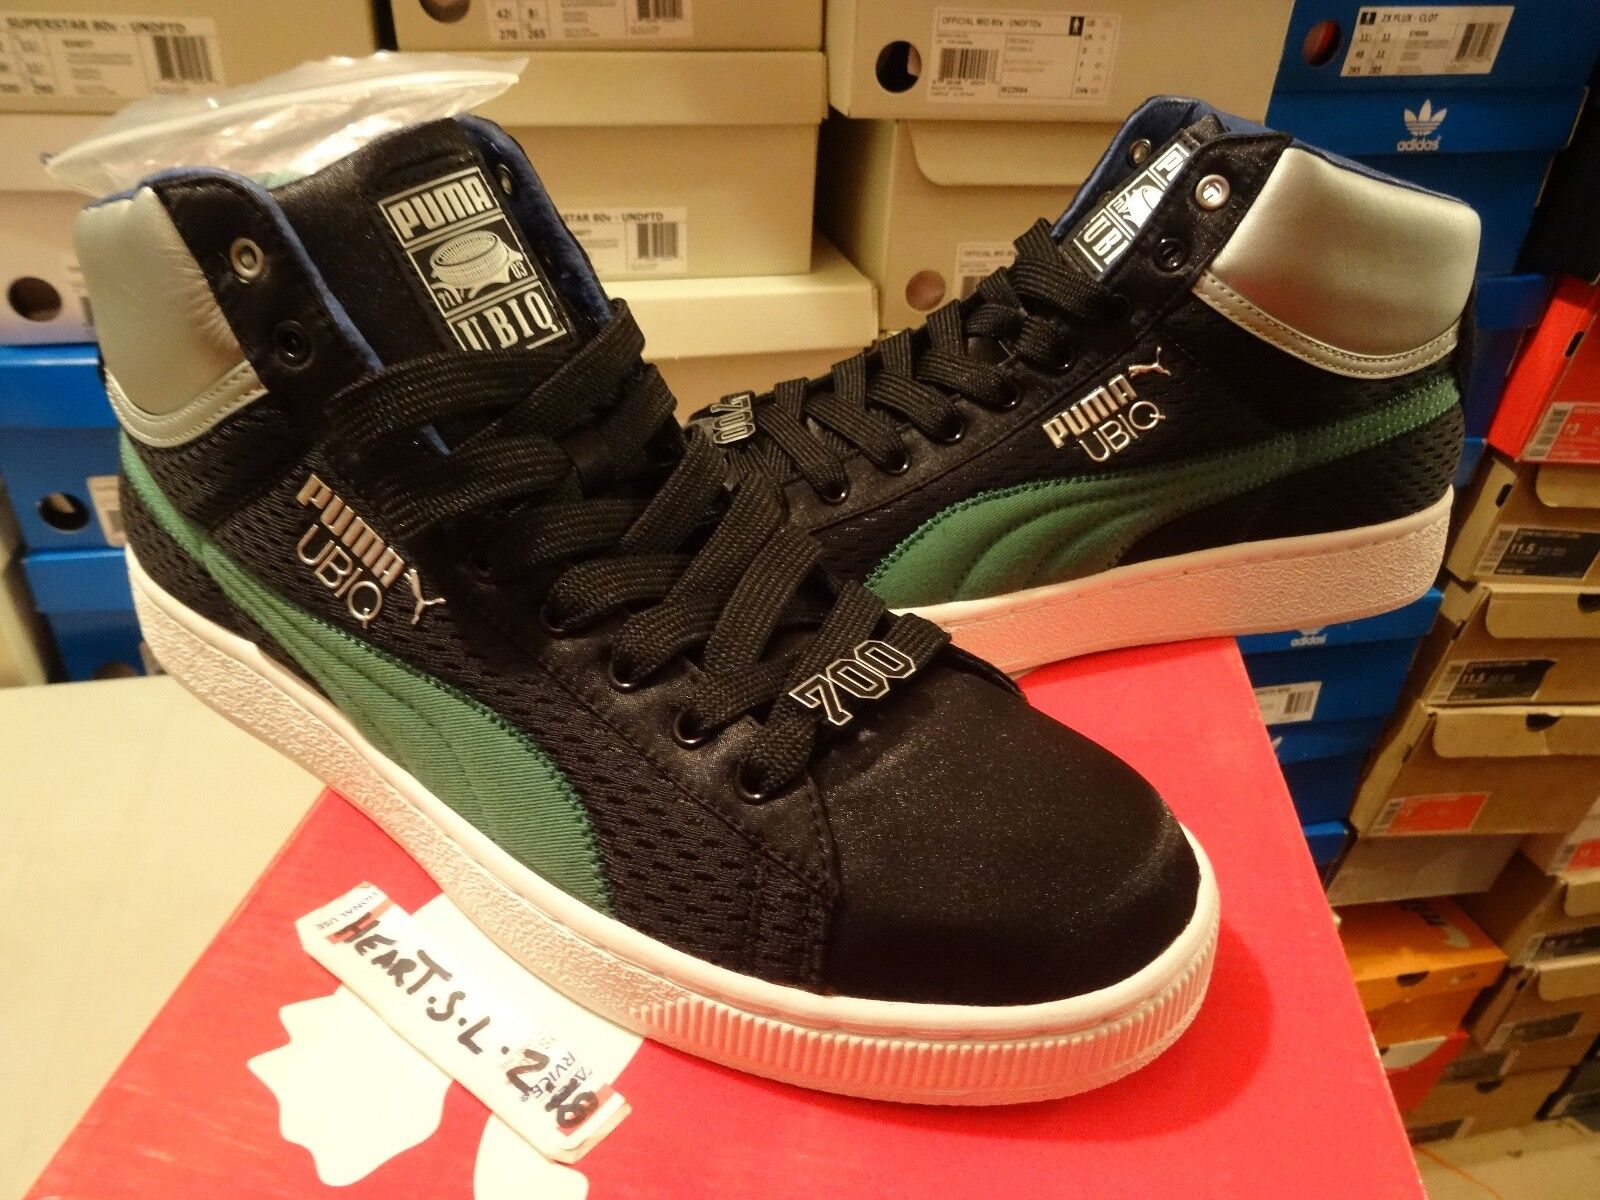 NEW Rare Retro Puma X UBIQ Clyde Trainers Trainers Trainers level 700 collection 349569 01 SZ 7 228e7a